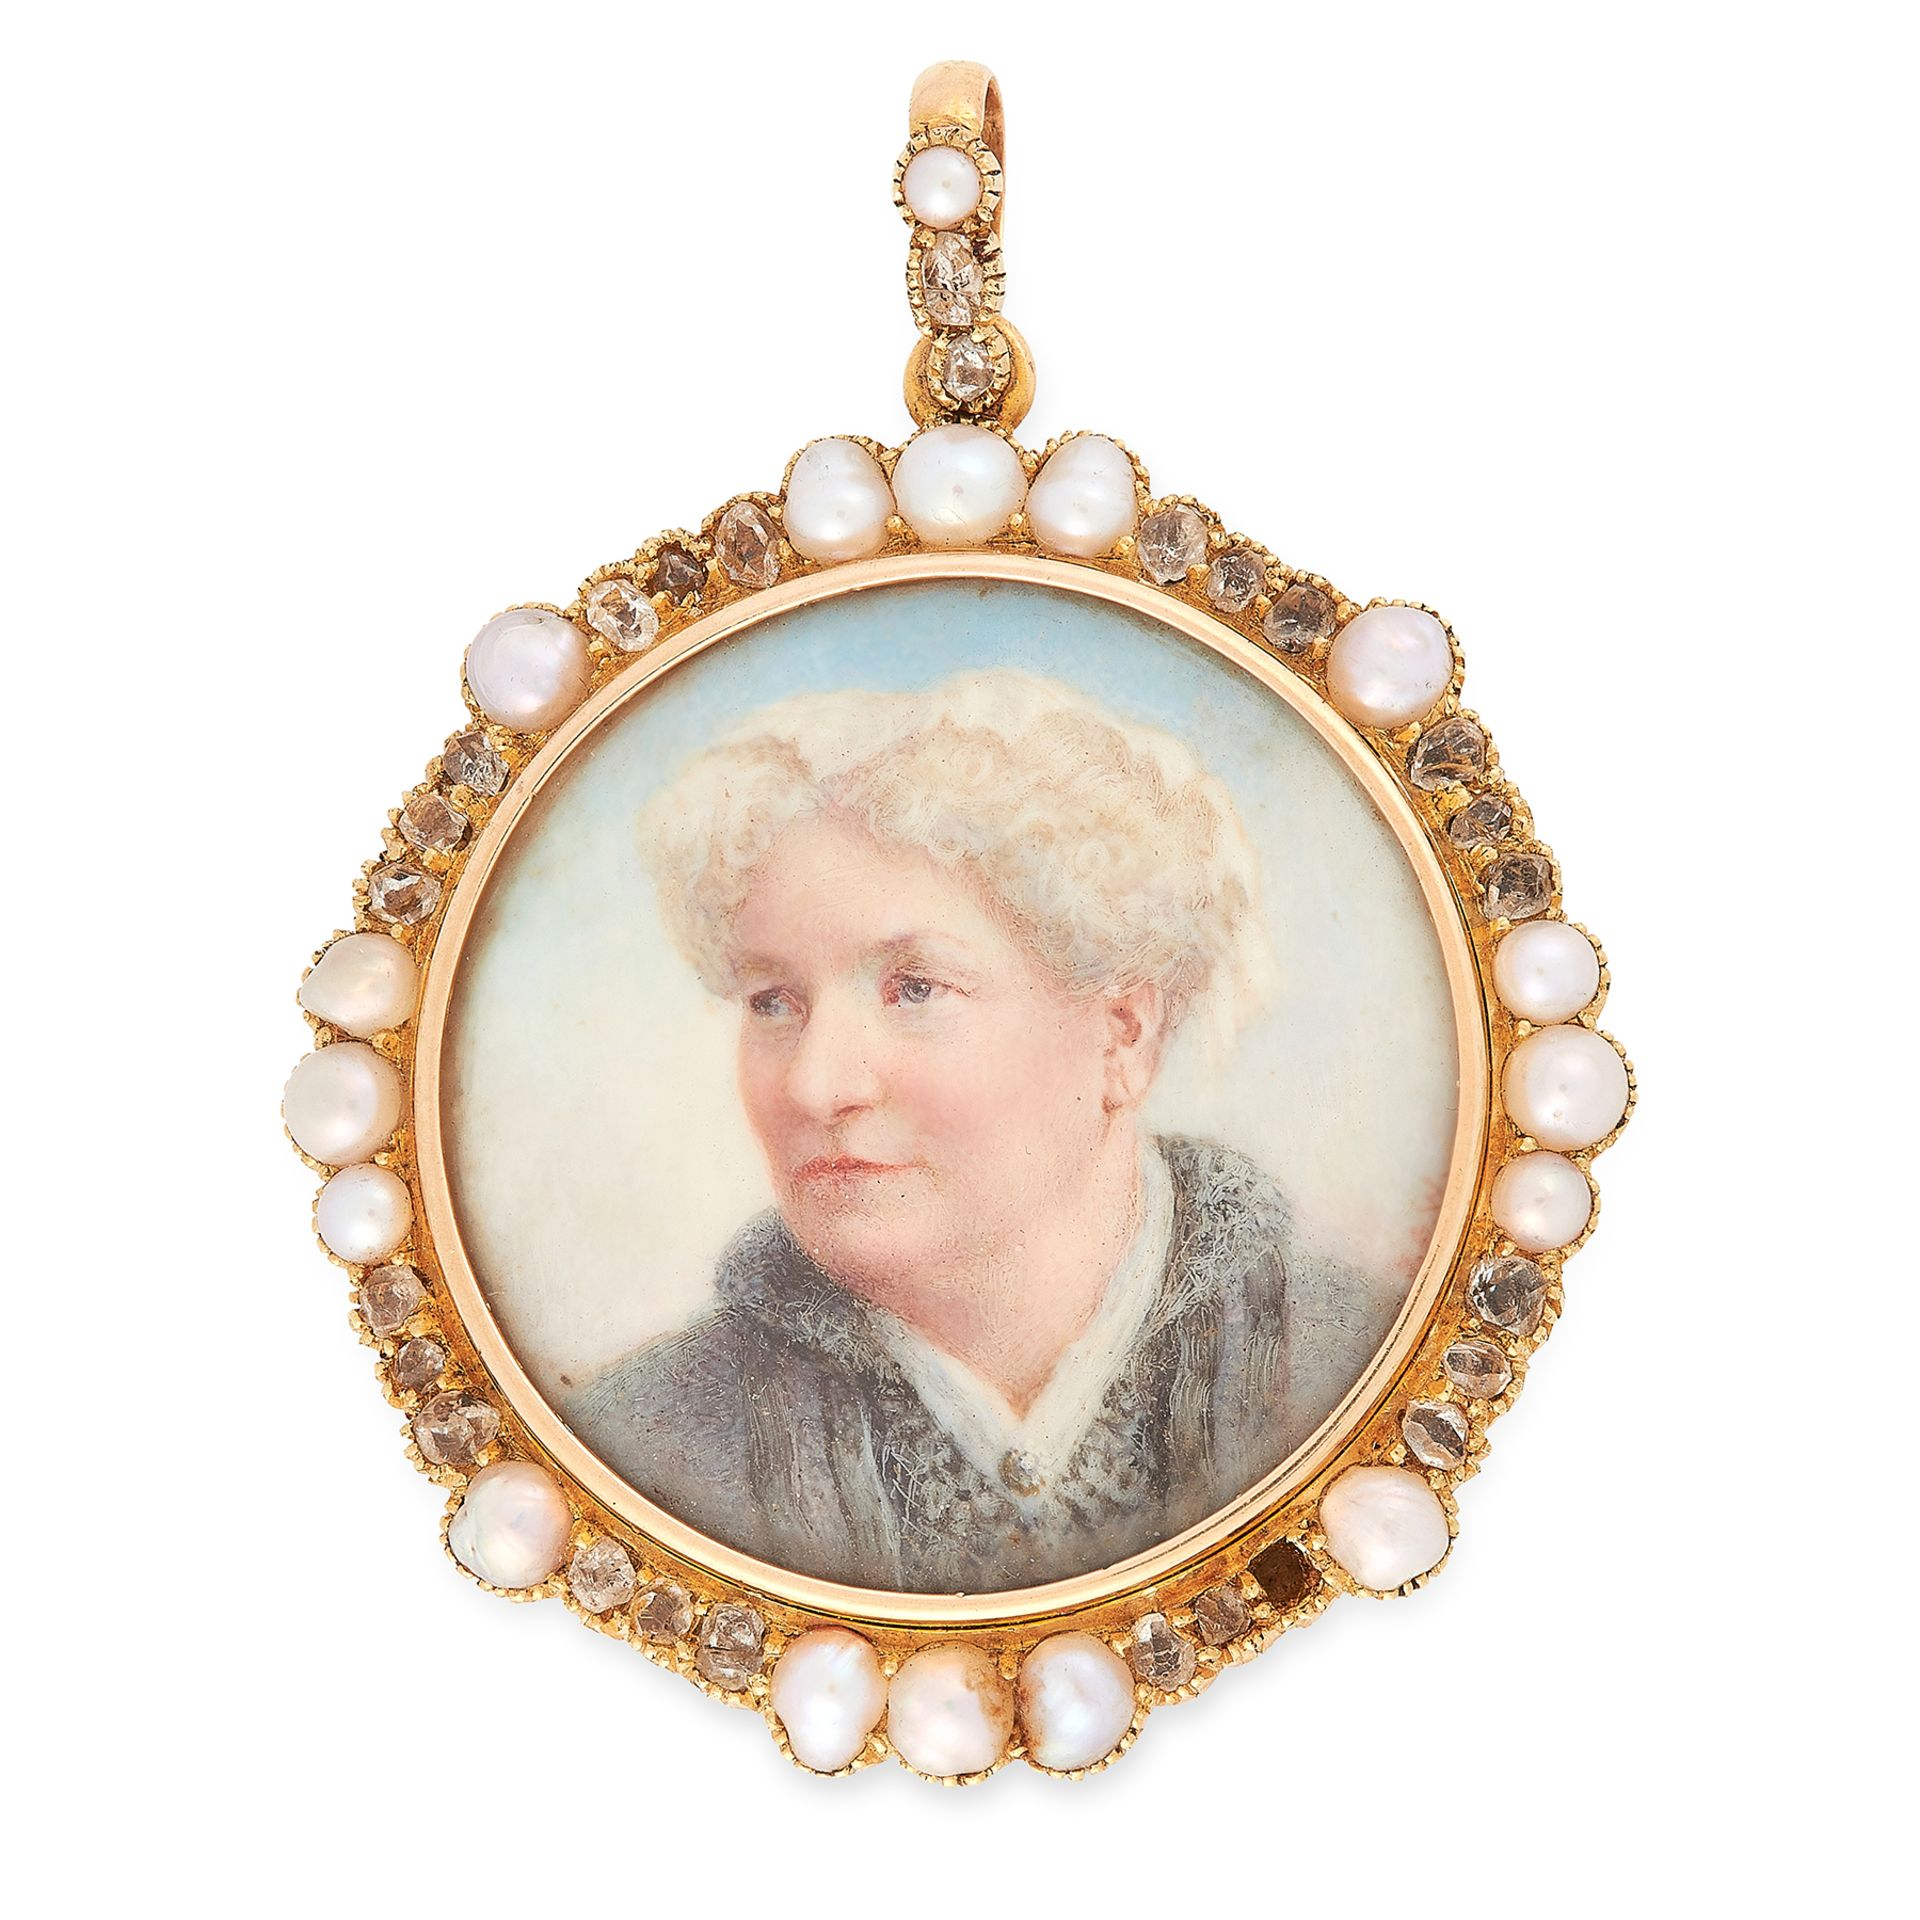 Los 30 - AN ANTIQUE PEARL AND DIAMOND PORTRAIT MINIATURE PENDANT in yellow gold, set with a circular portrait